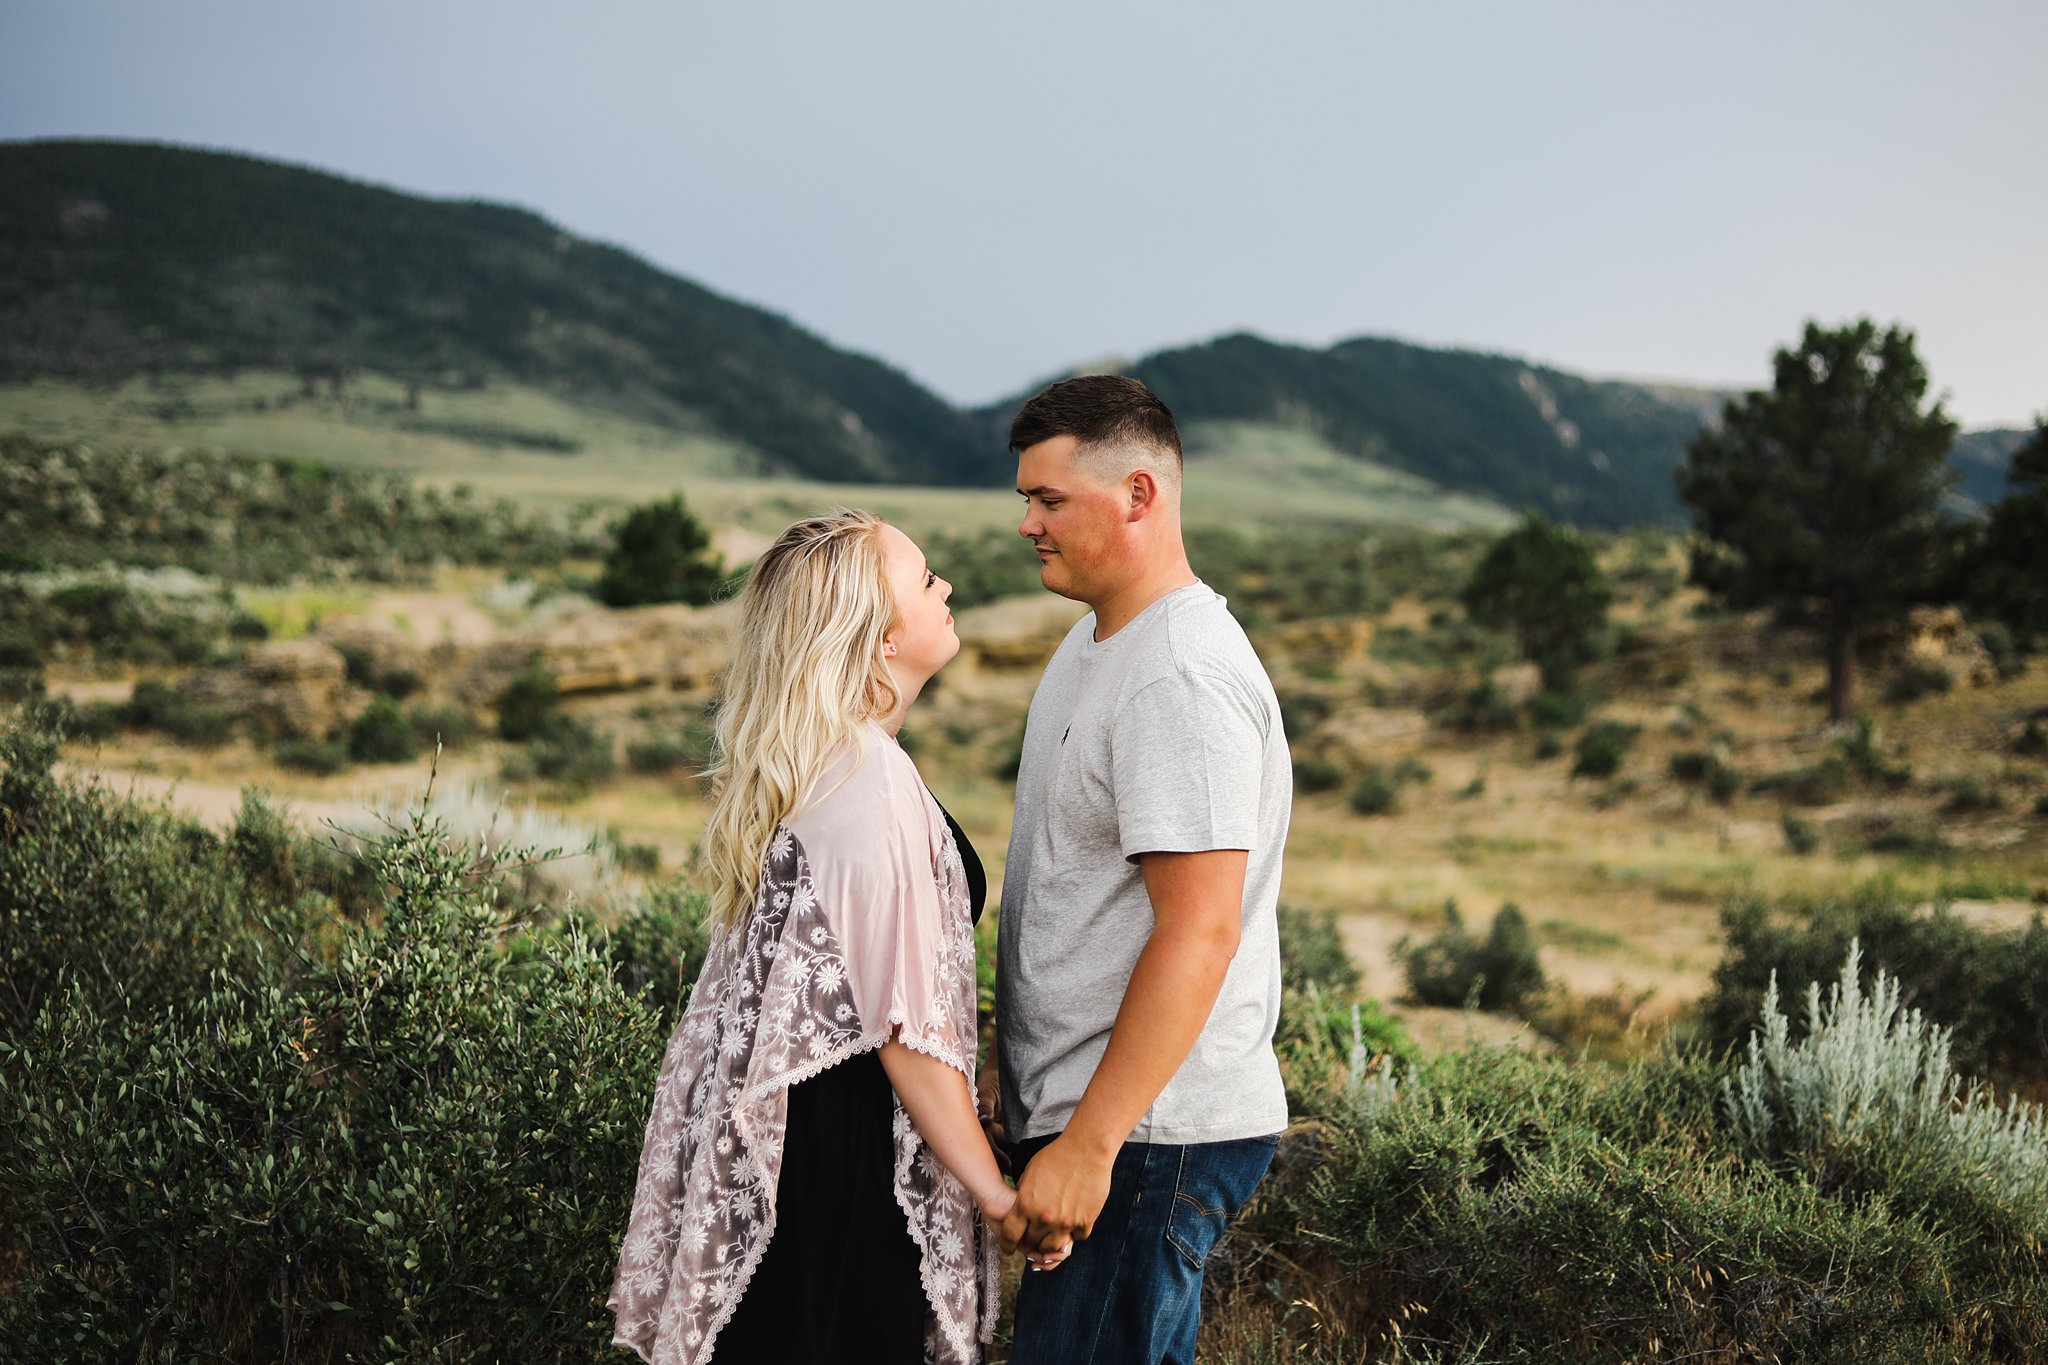 engagement pictures of a couple in the mountains